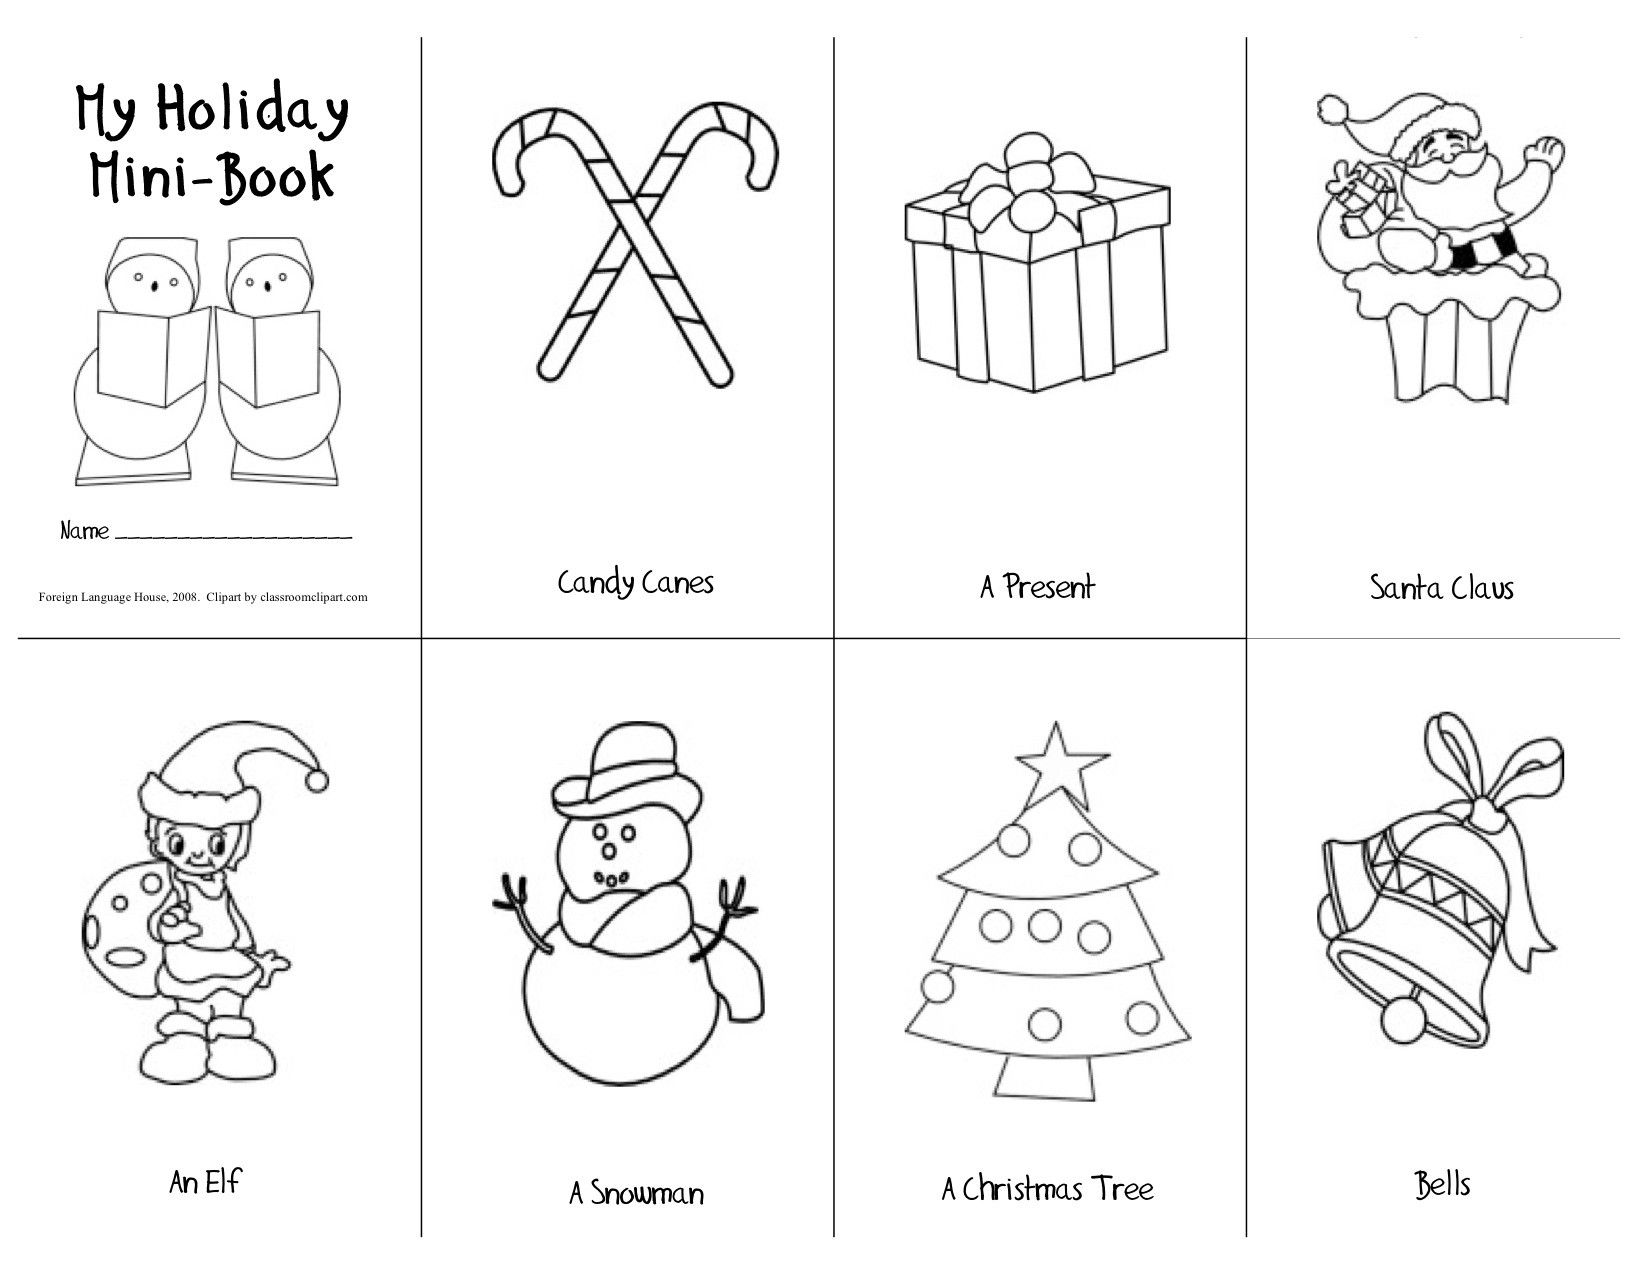 The Grinch Preschool Worksheet